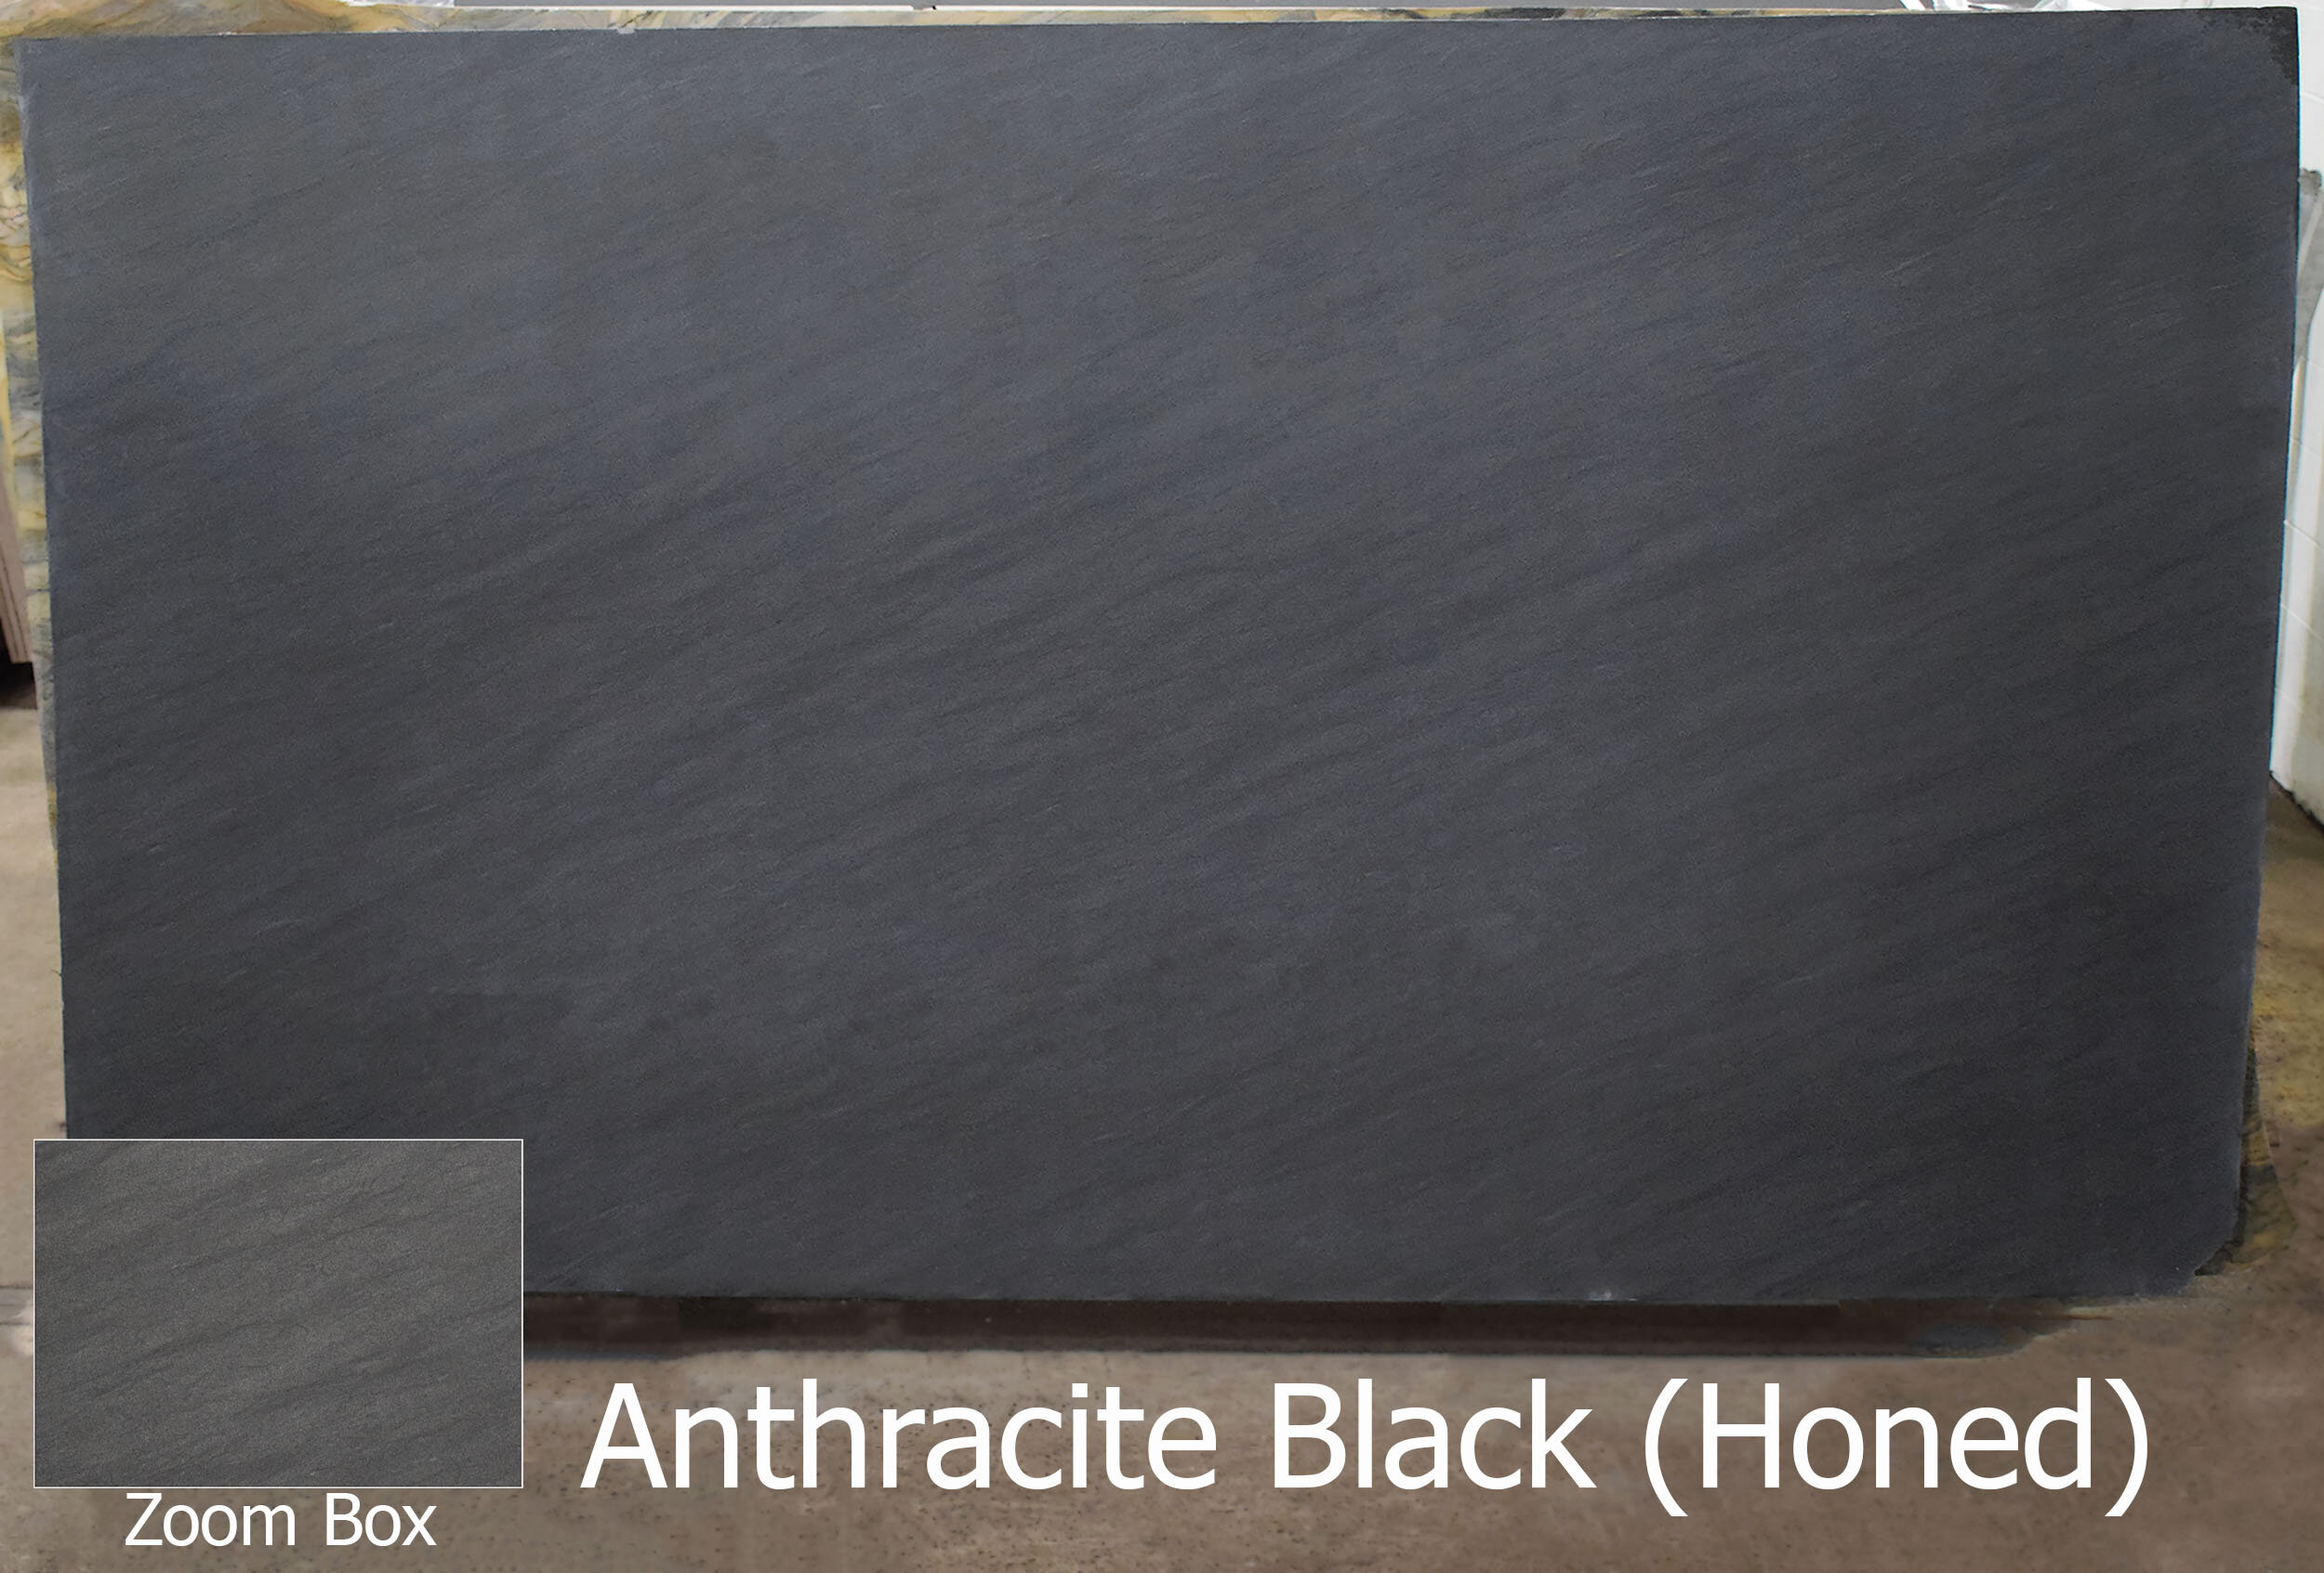 ANTHRACITE BLACK (HONED)